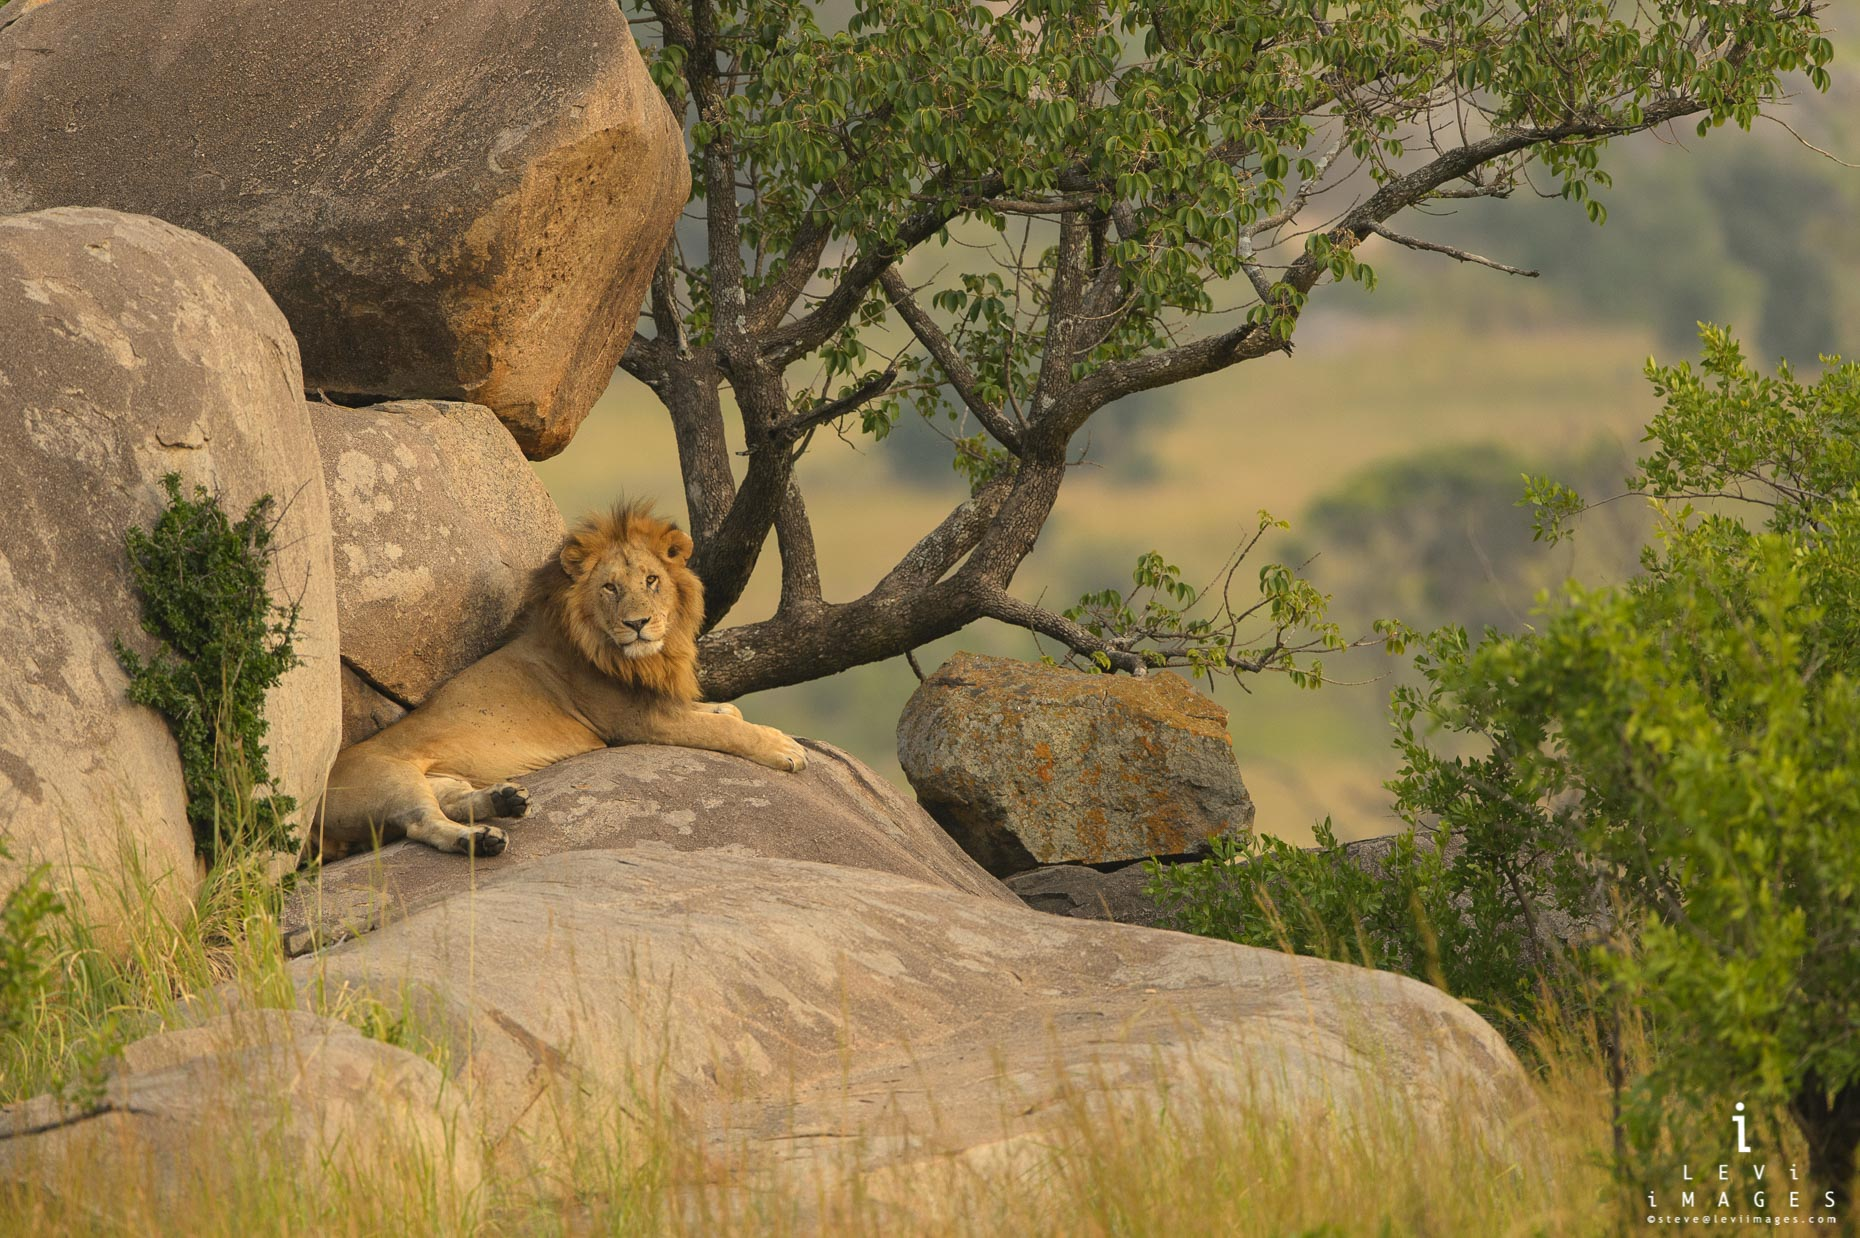 Male Lion (Panthera leo) rests on Kopje rocks in golden light. Serengeti, Africa